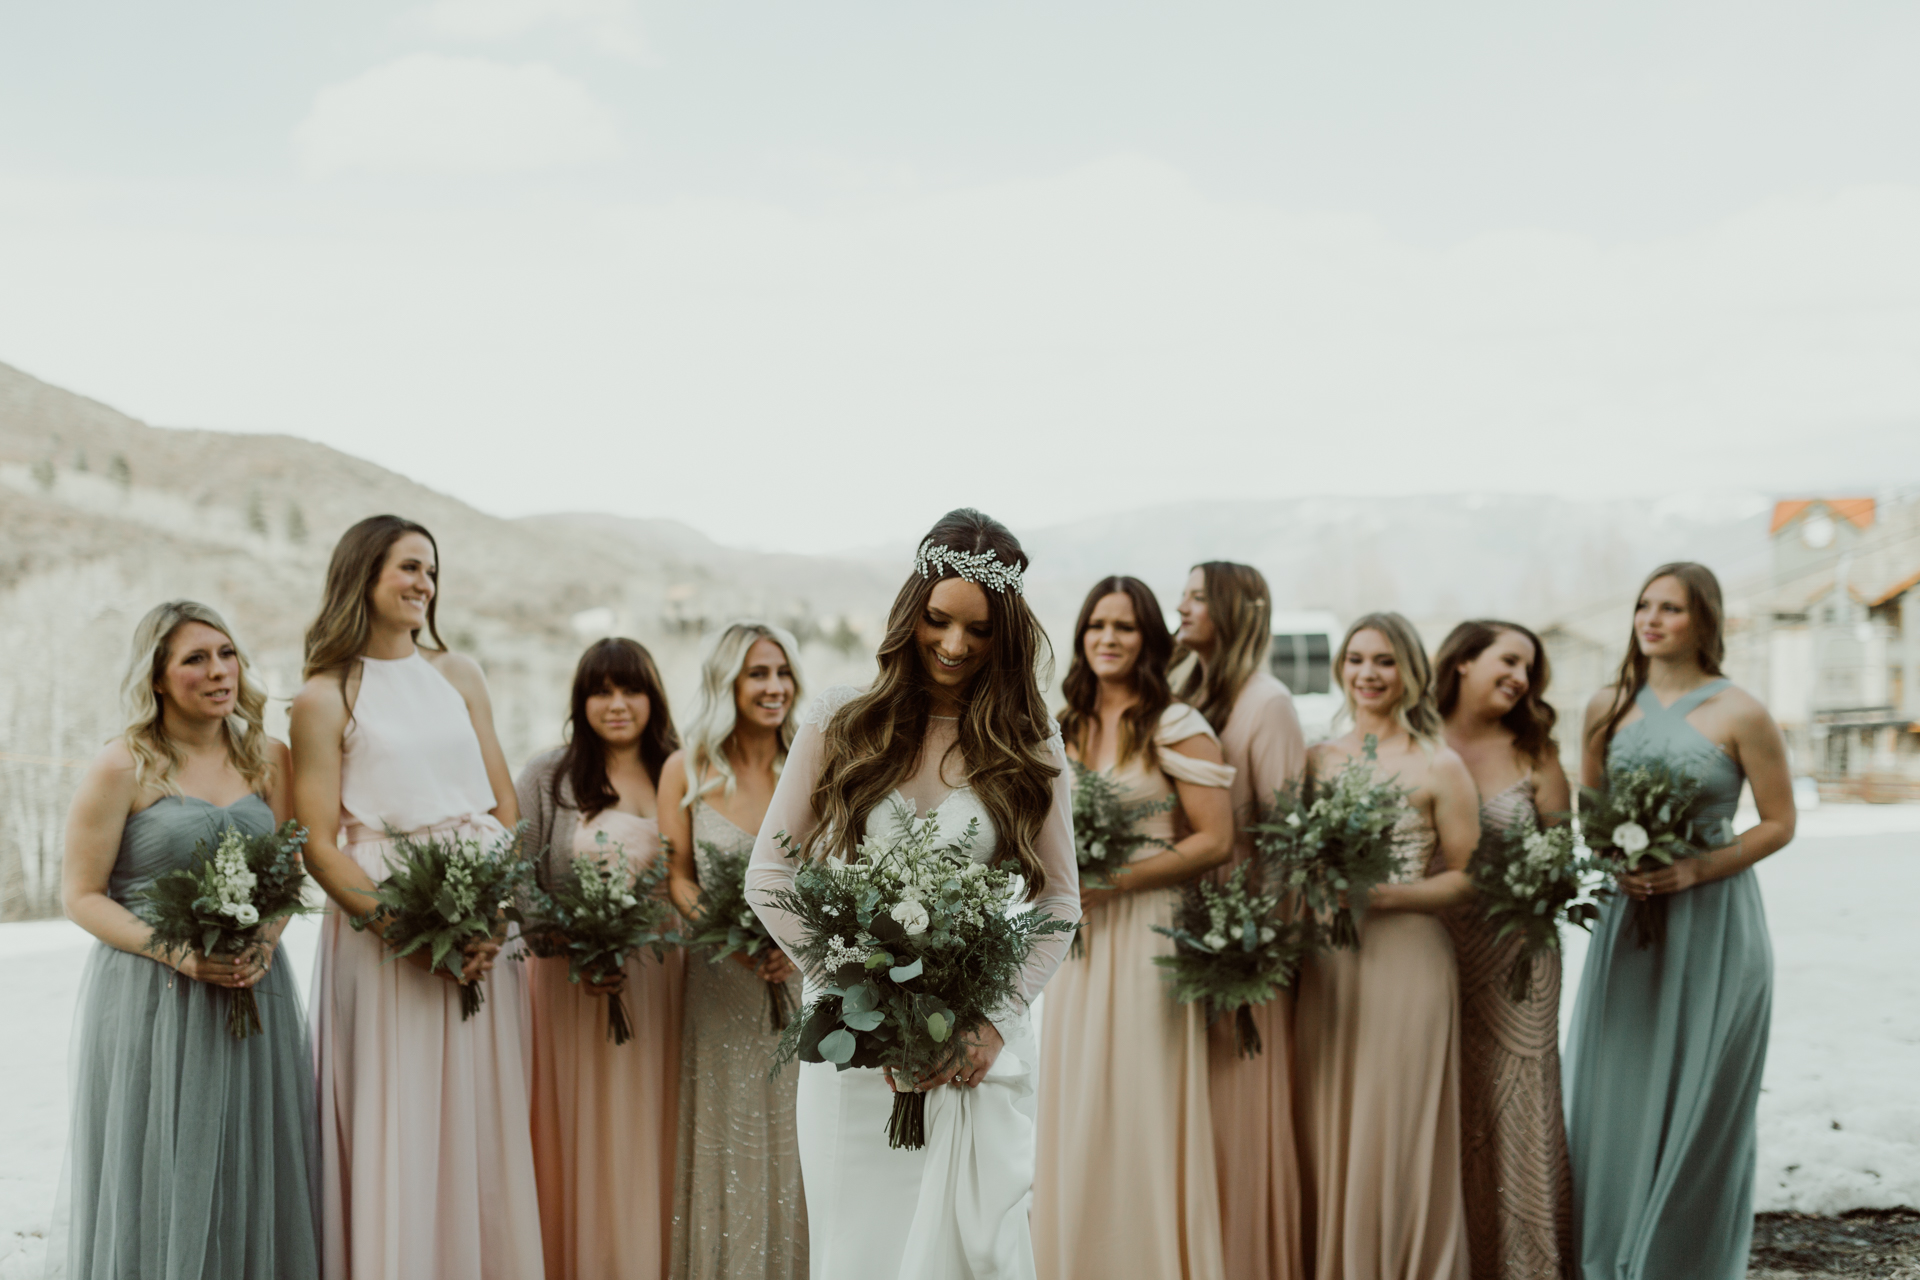 aspen-colorado-boho-mountain-wedding-1016.jpg